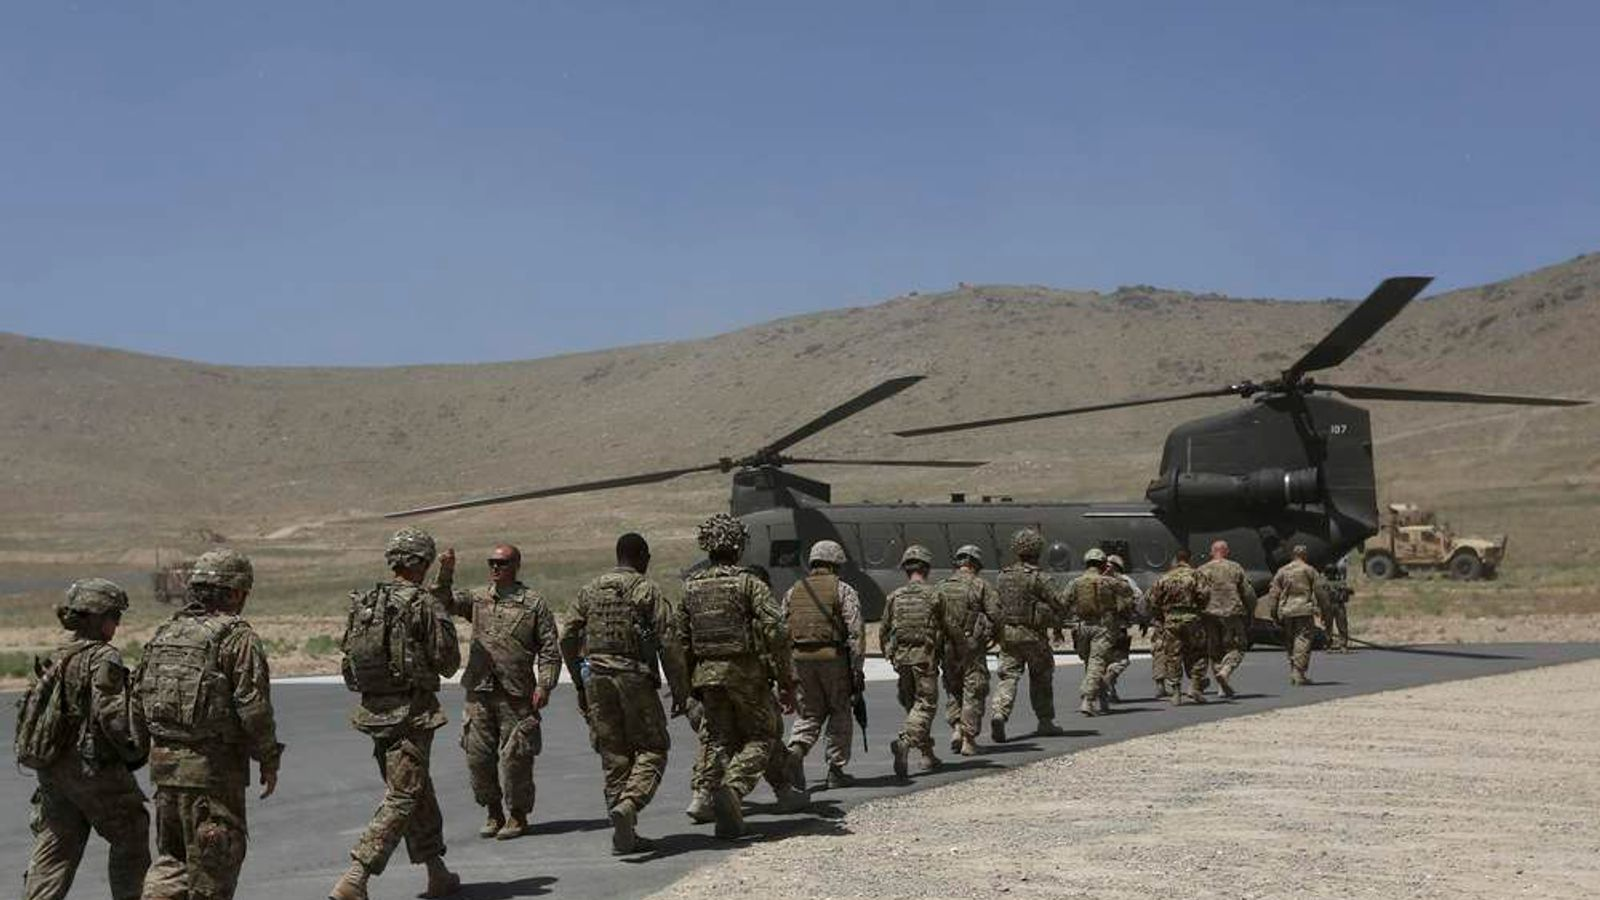 NATO soldiers board Chinook helicopter after a security handover ceremony at a military academy outside Kabul